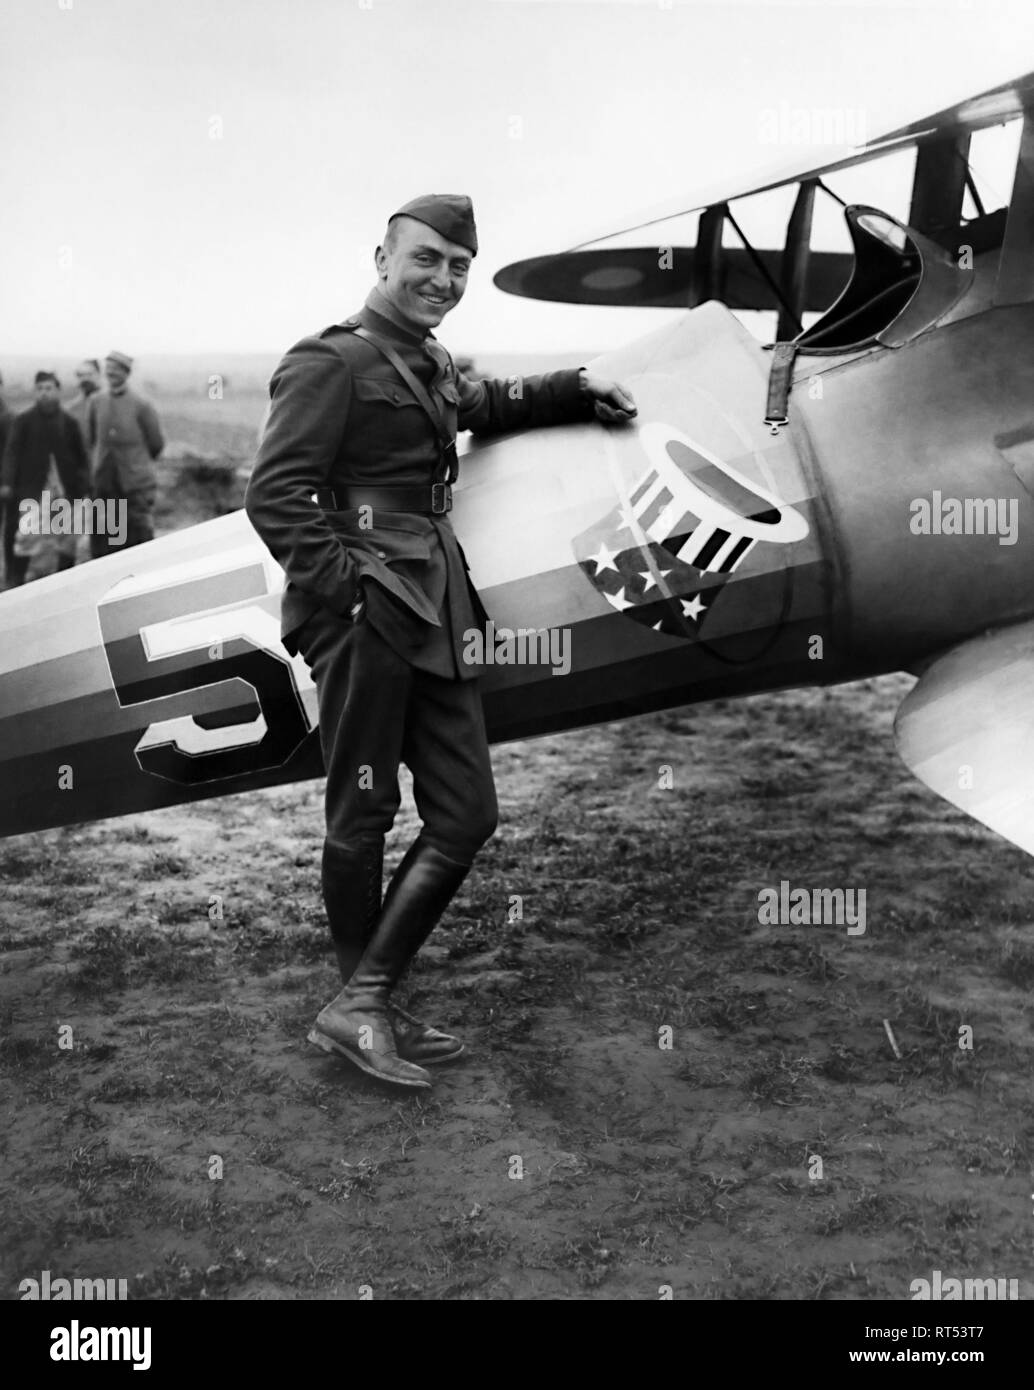 Full-body portrait of American Air Ace Eddie Rickenbacker aside his SPAD XIII aircraft. - Stock Image